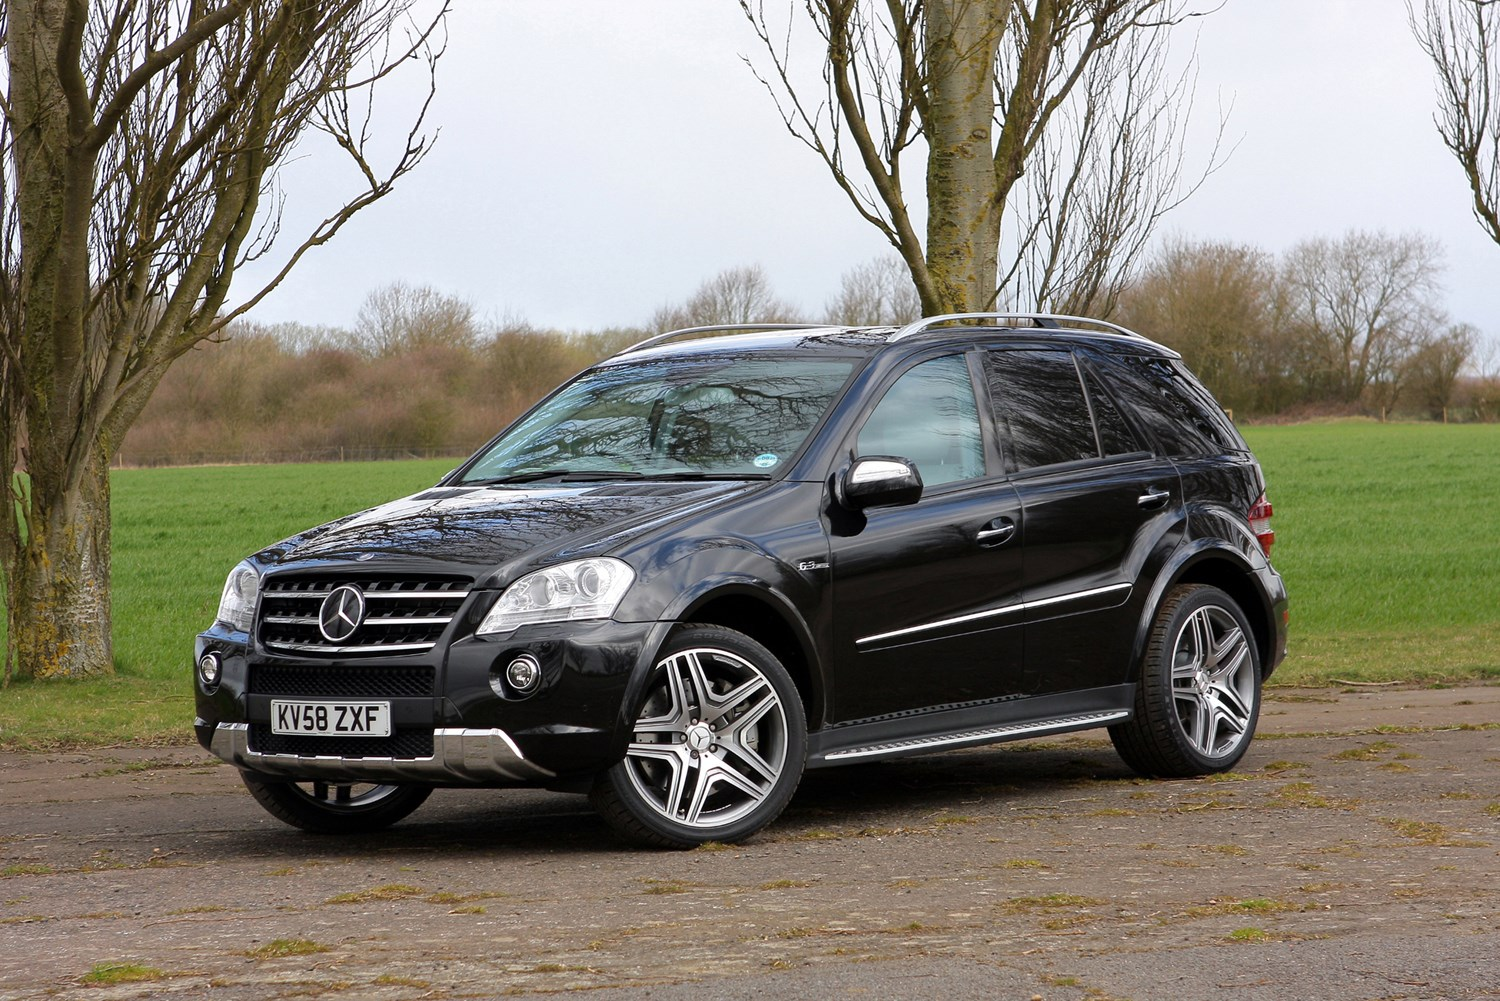 Mercedes benz m class amg review 2006 2010 parkers for How much is a mercedes benz c class